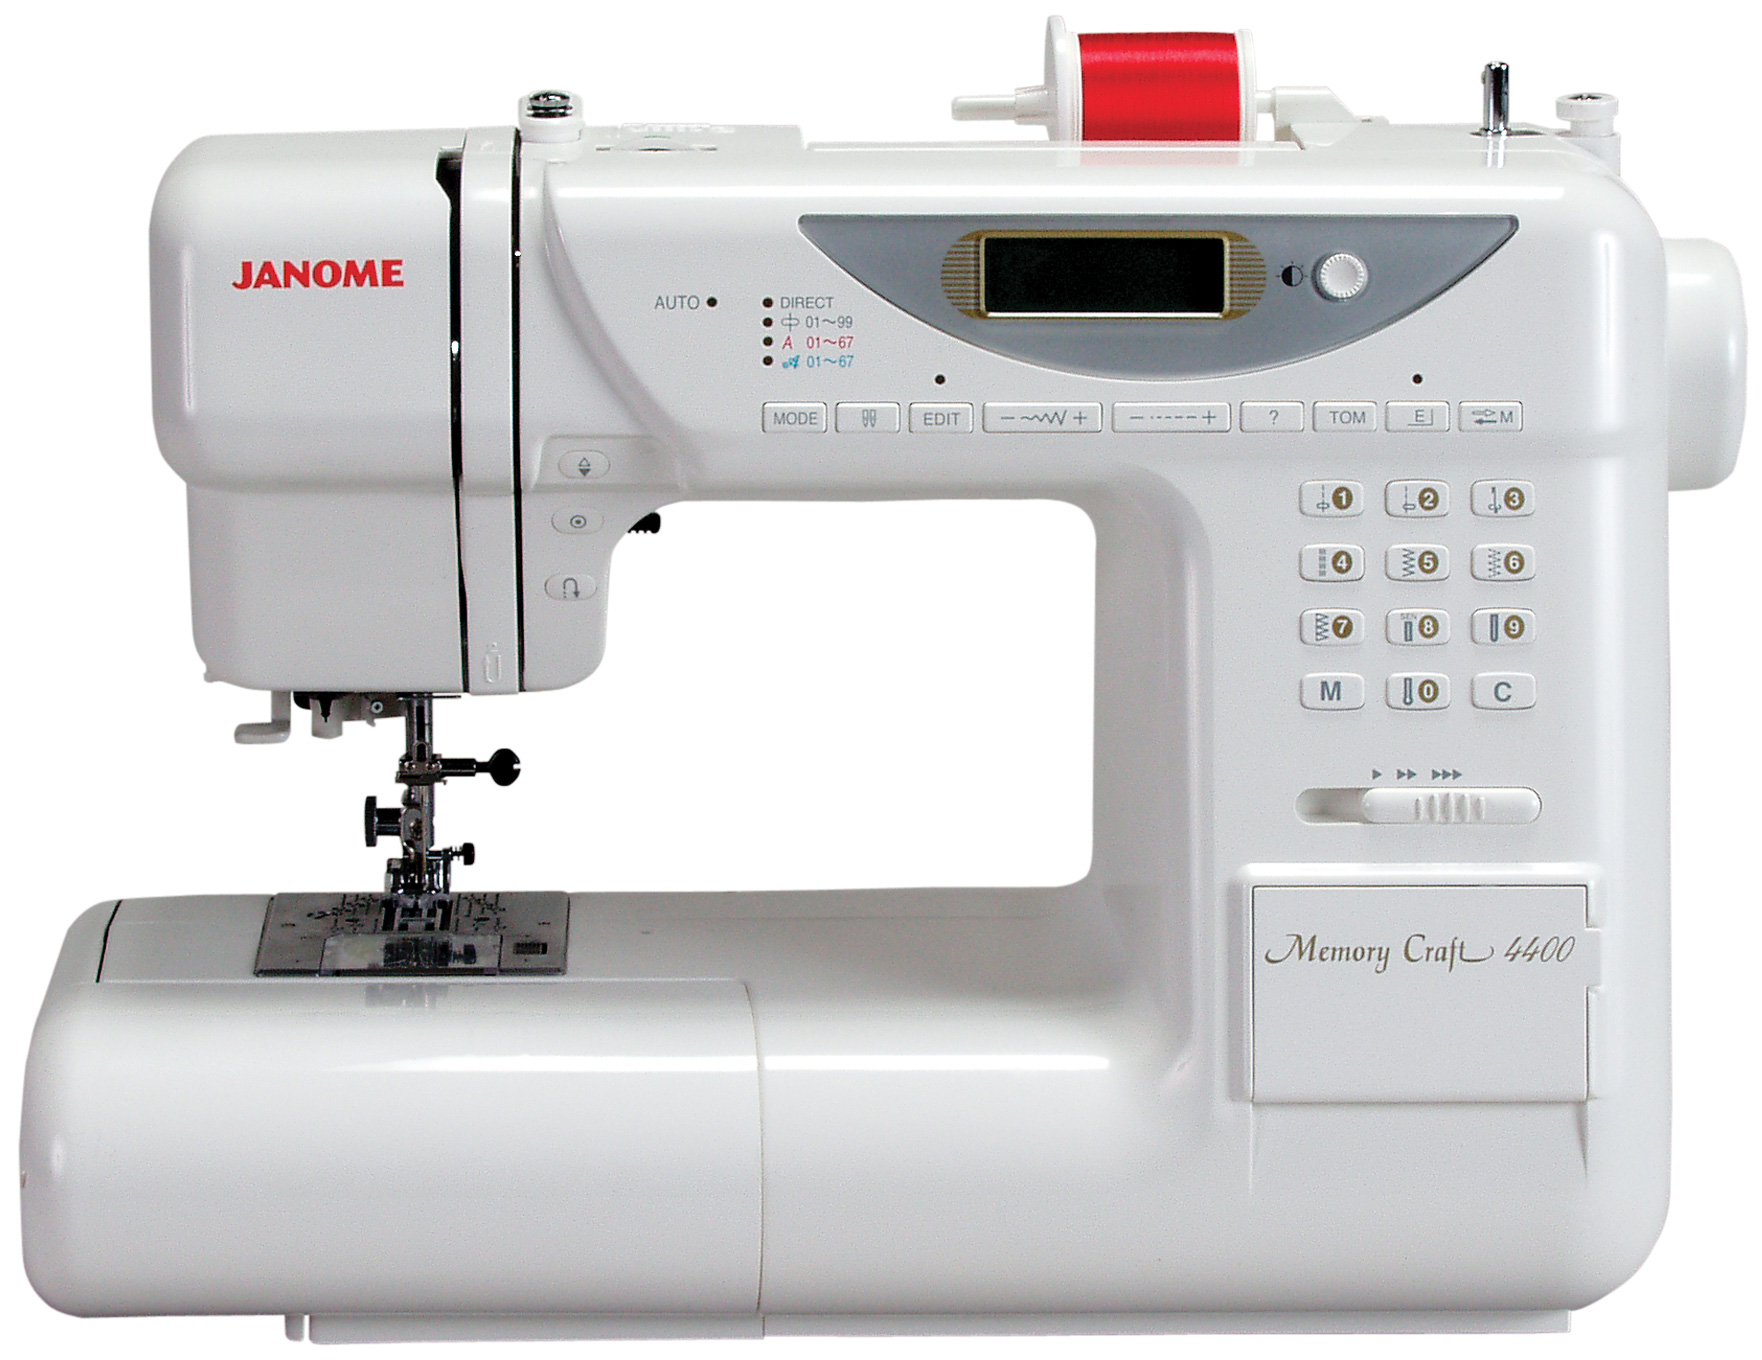 craft horizon a machine quilting sewing janome memory article blog hero community win quilt